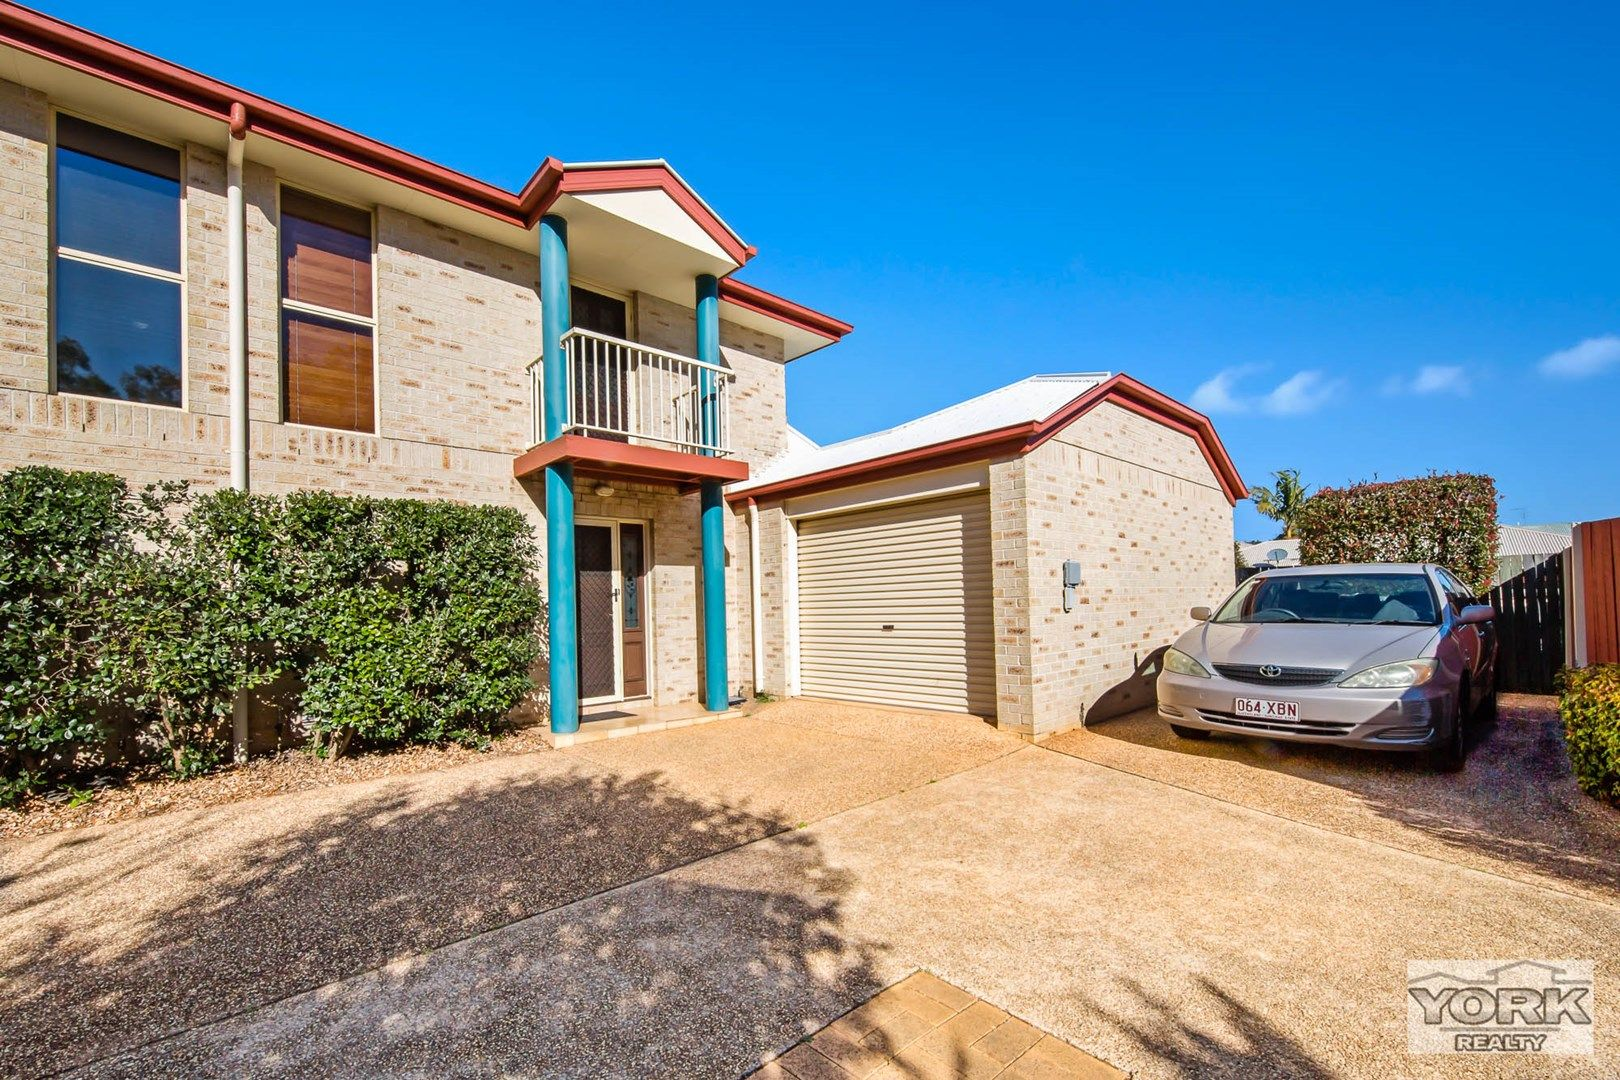 3/330 Hume Street, Centenary Heights QLD 4350, Image 0